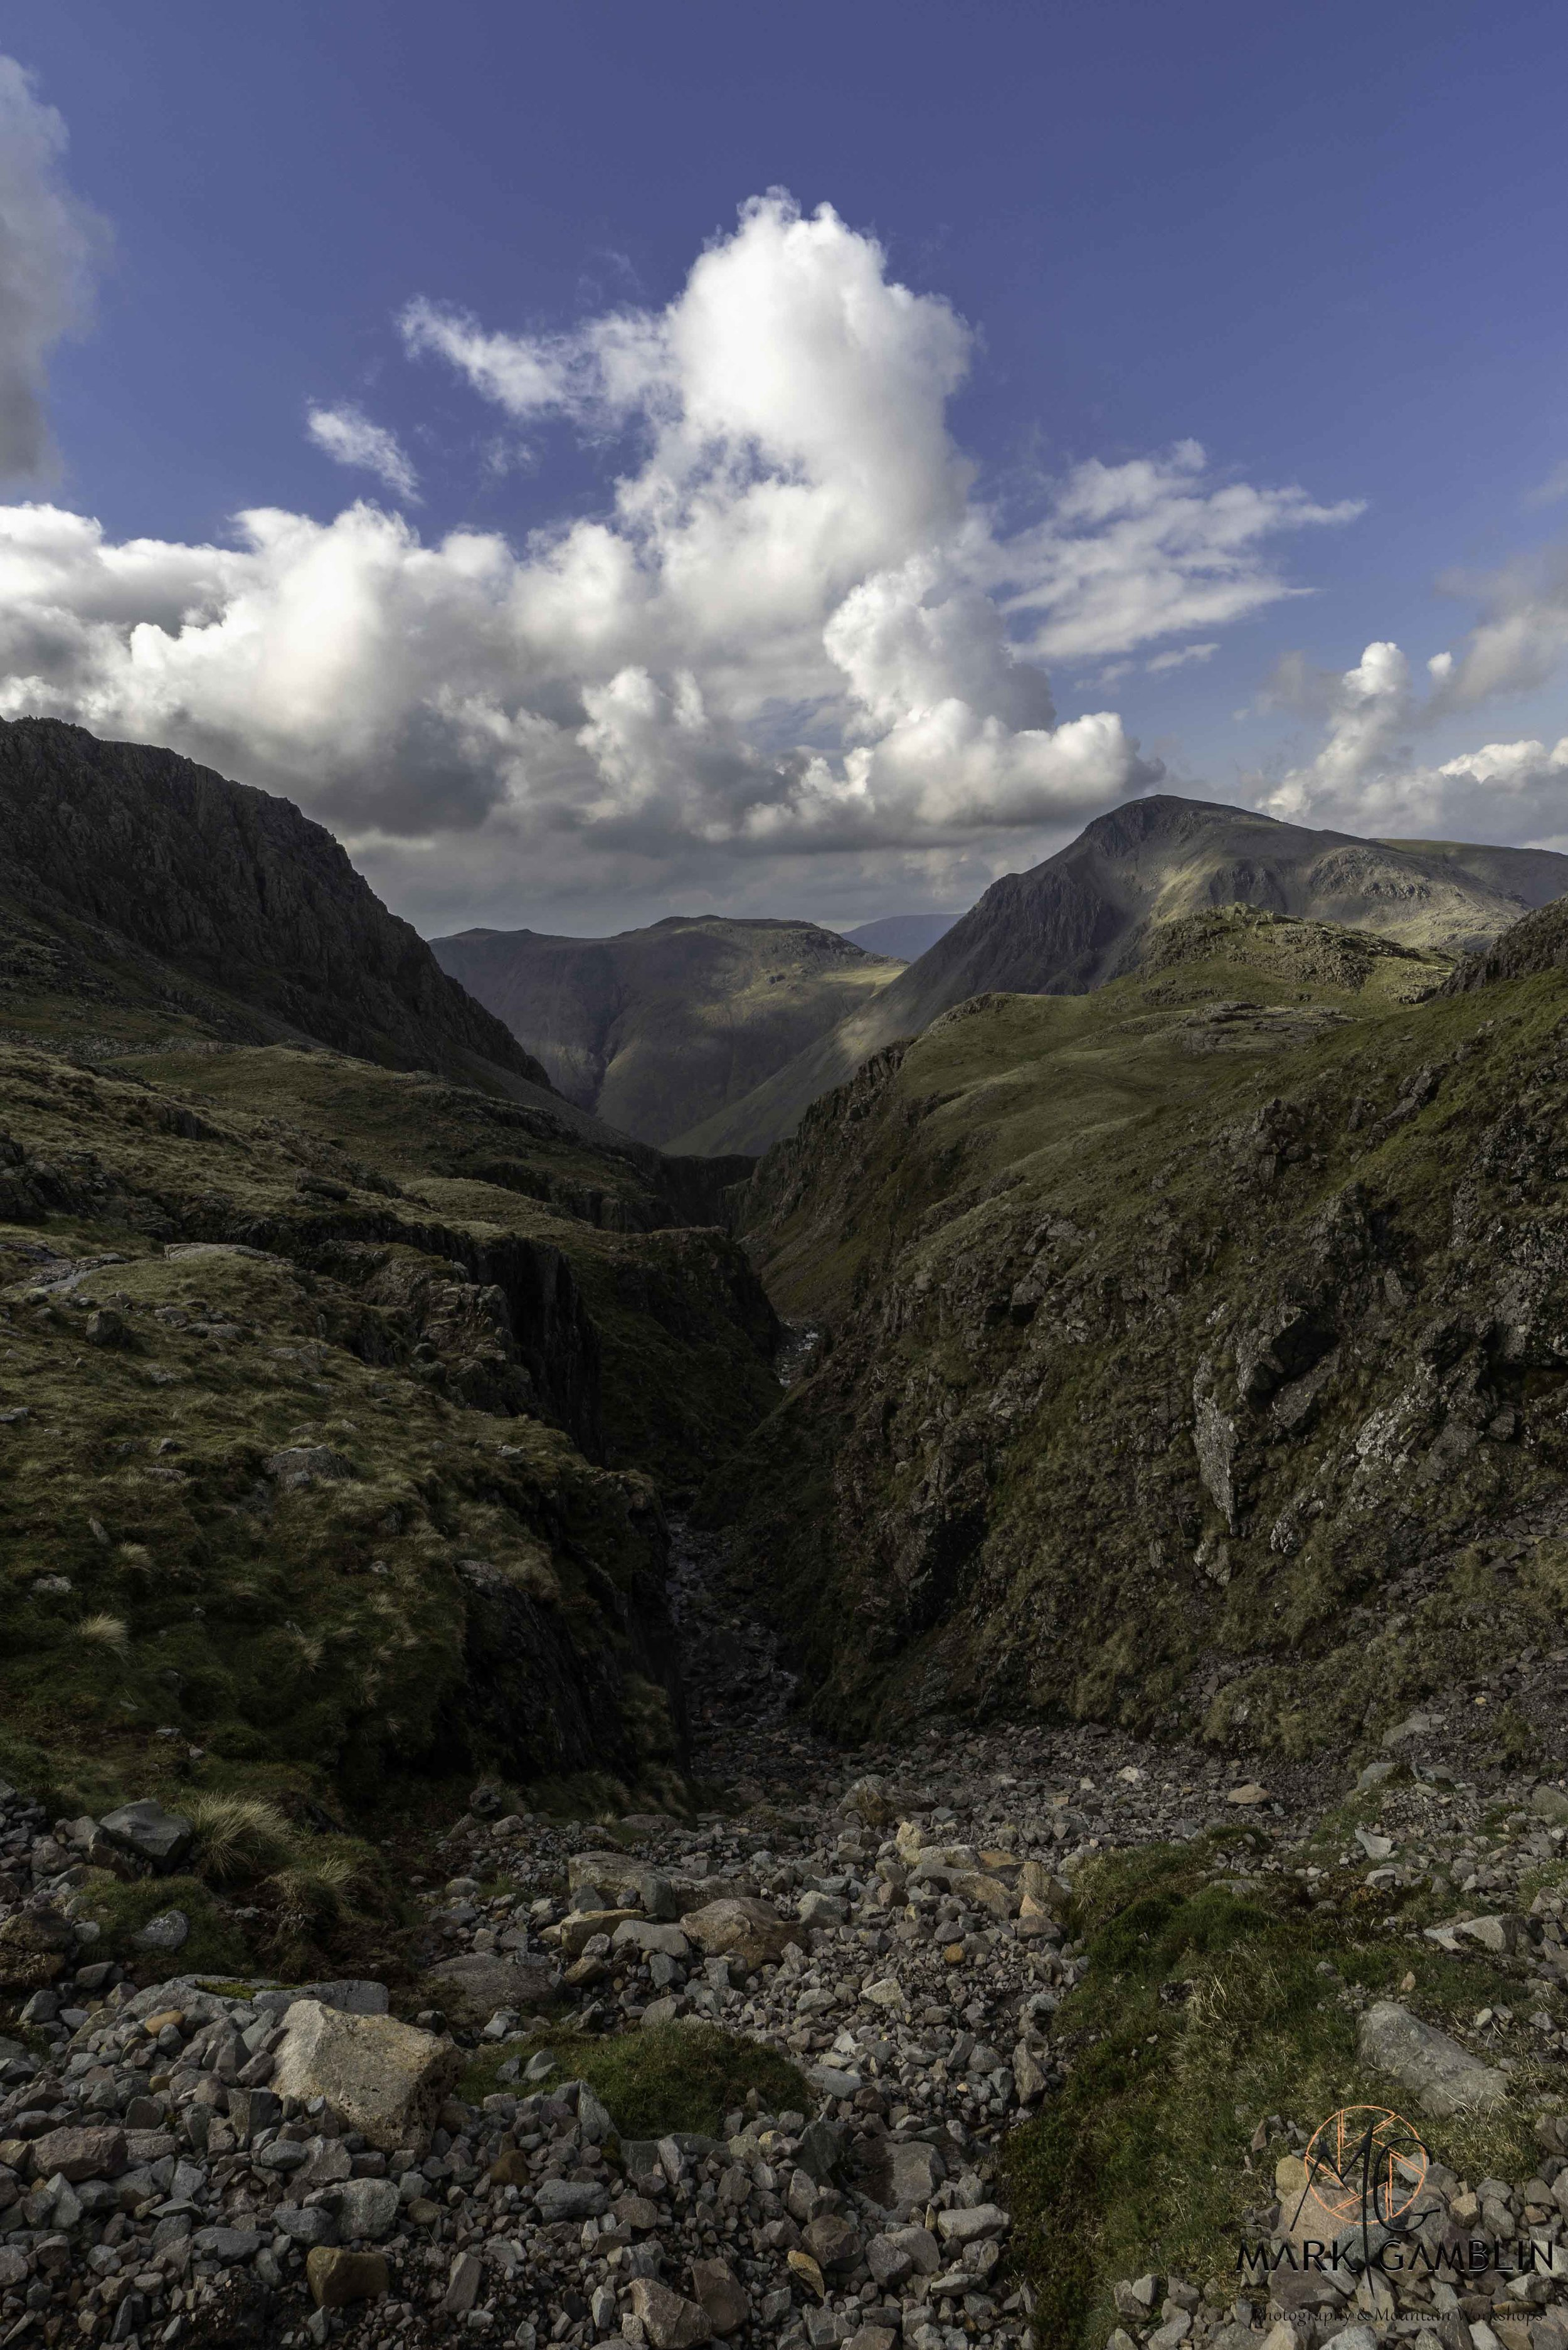 Looking down Piers Gill with Kirk Fell center and Great Gable on the right.